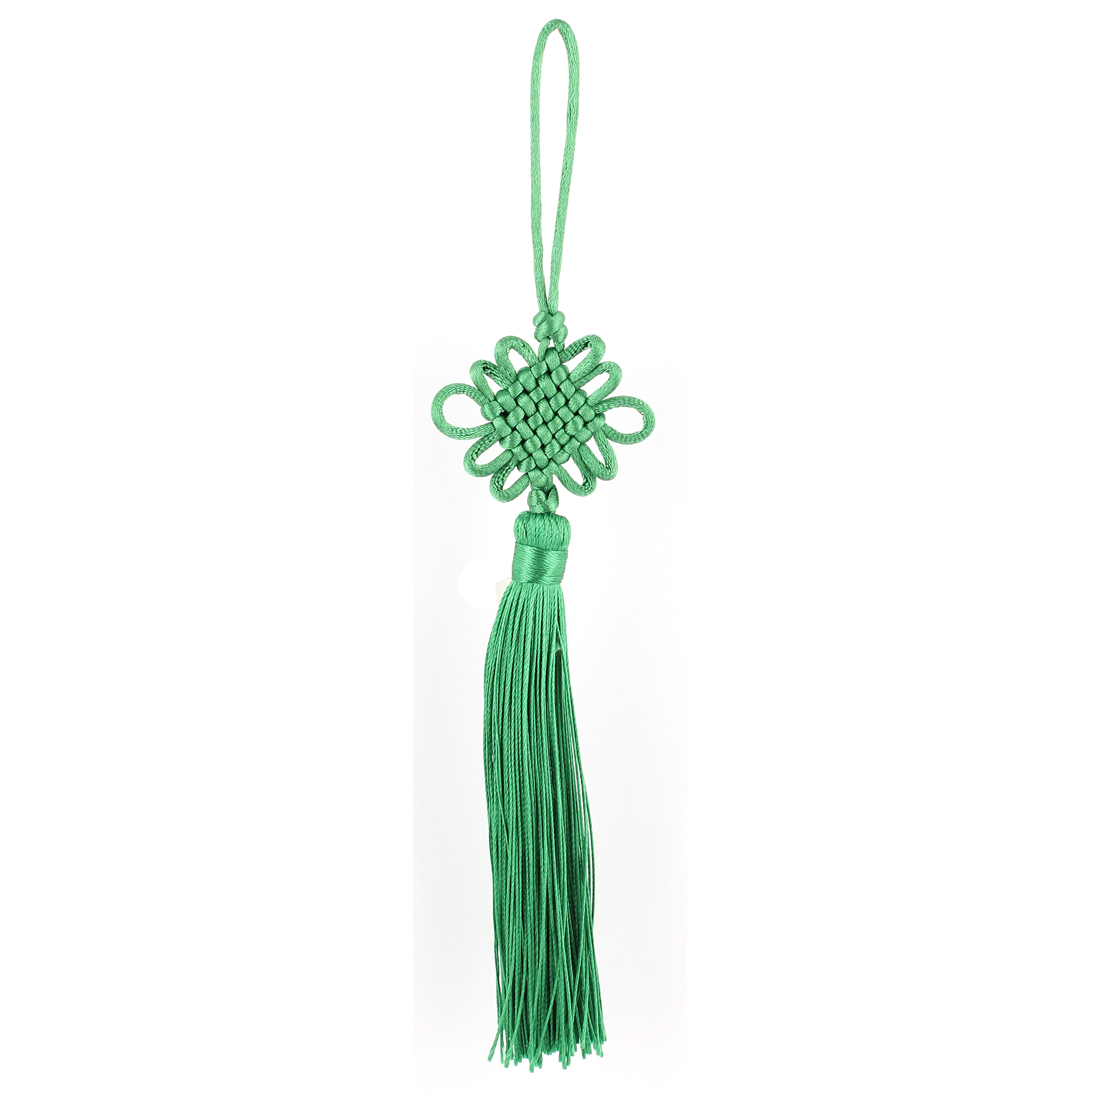 Home Car Festival Handmade Tassel Knitted Chinese Knot Hanging Ornament Green